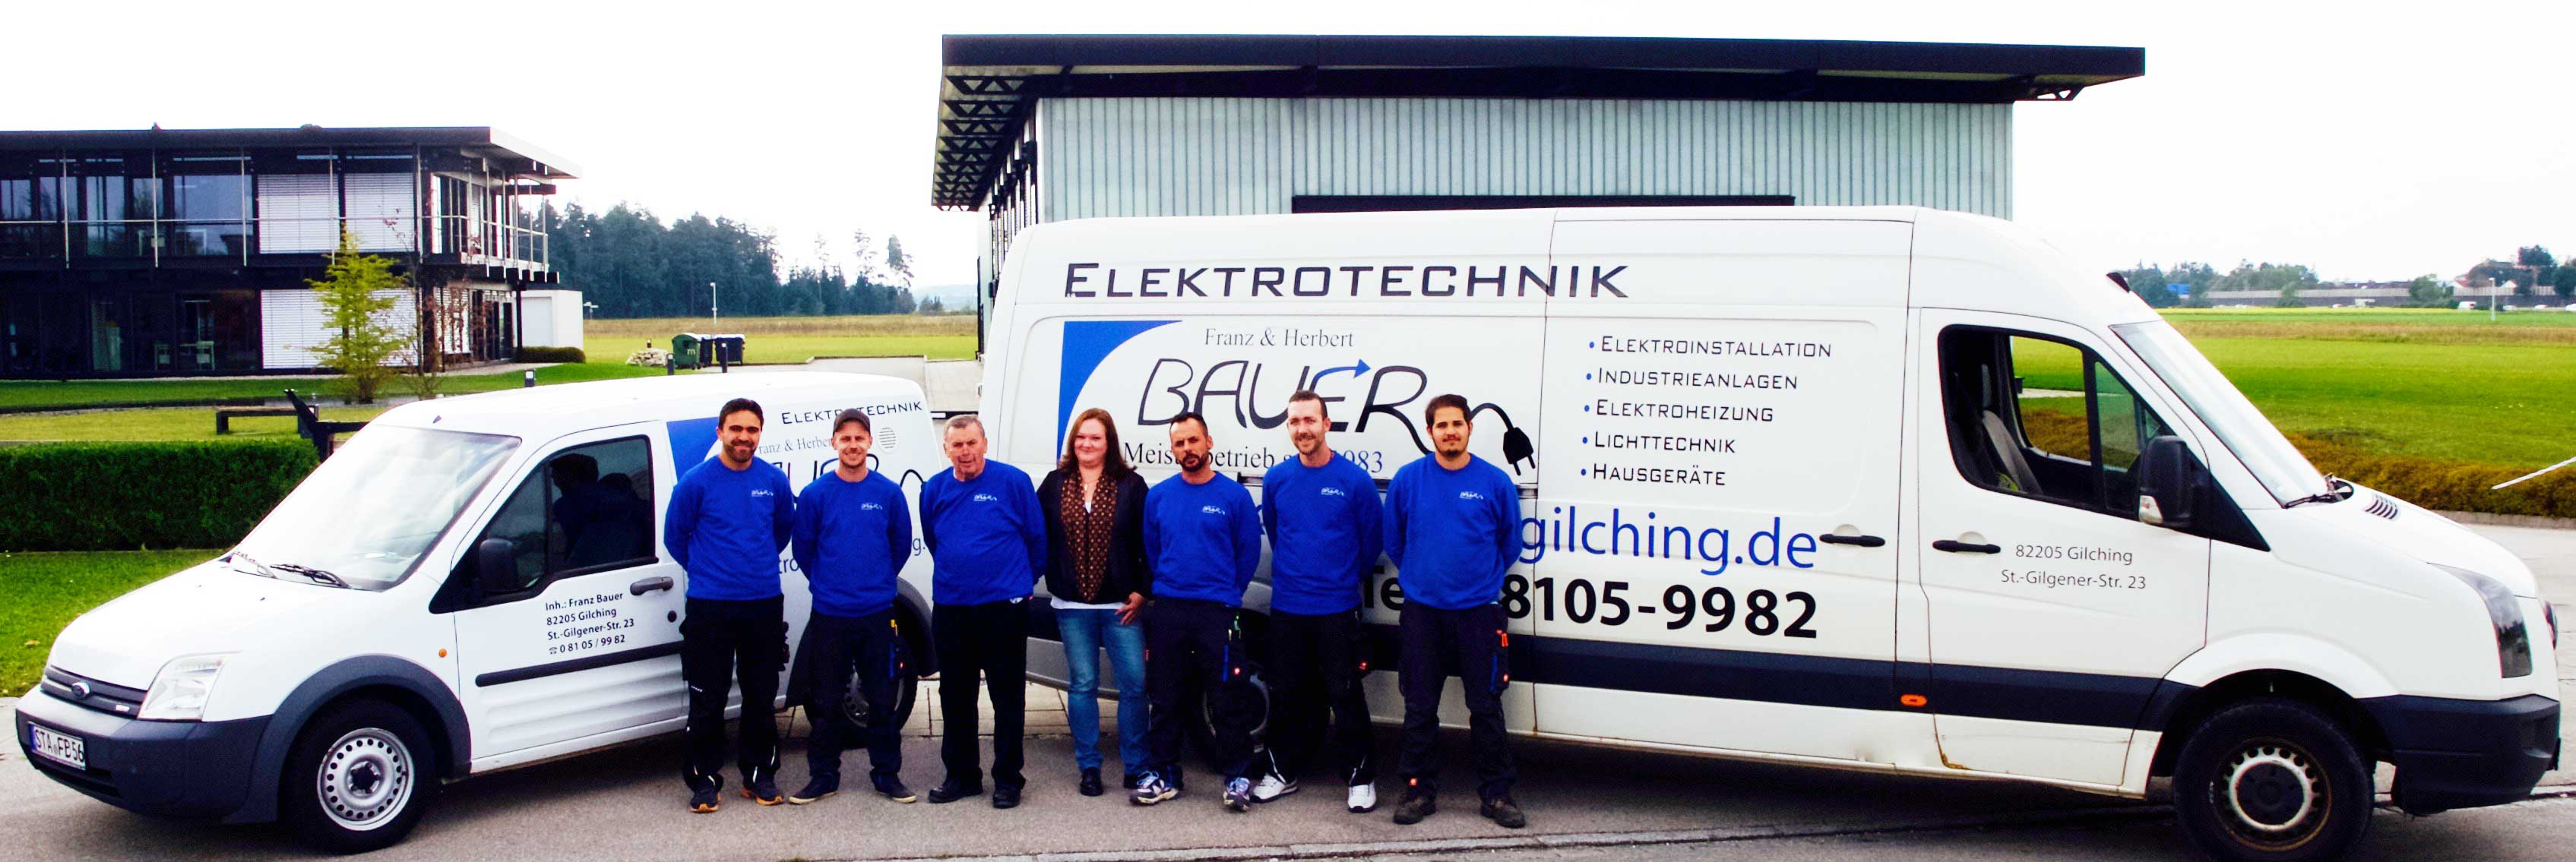 bauer-elektrotechnik_team_gross